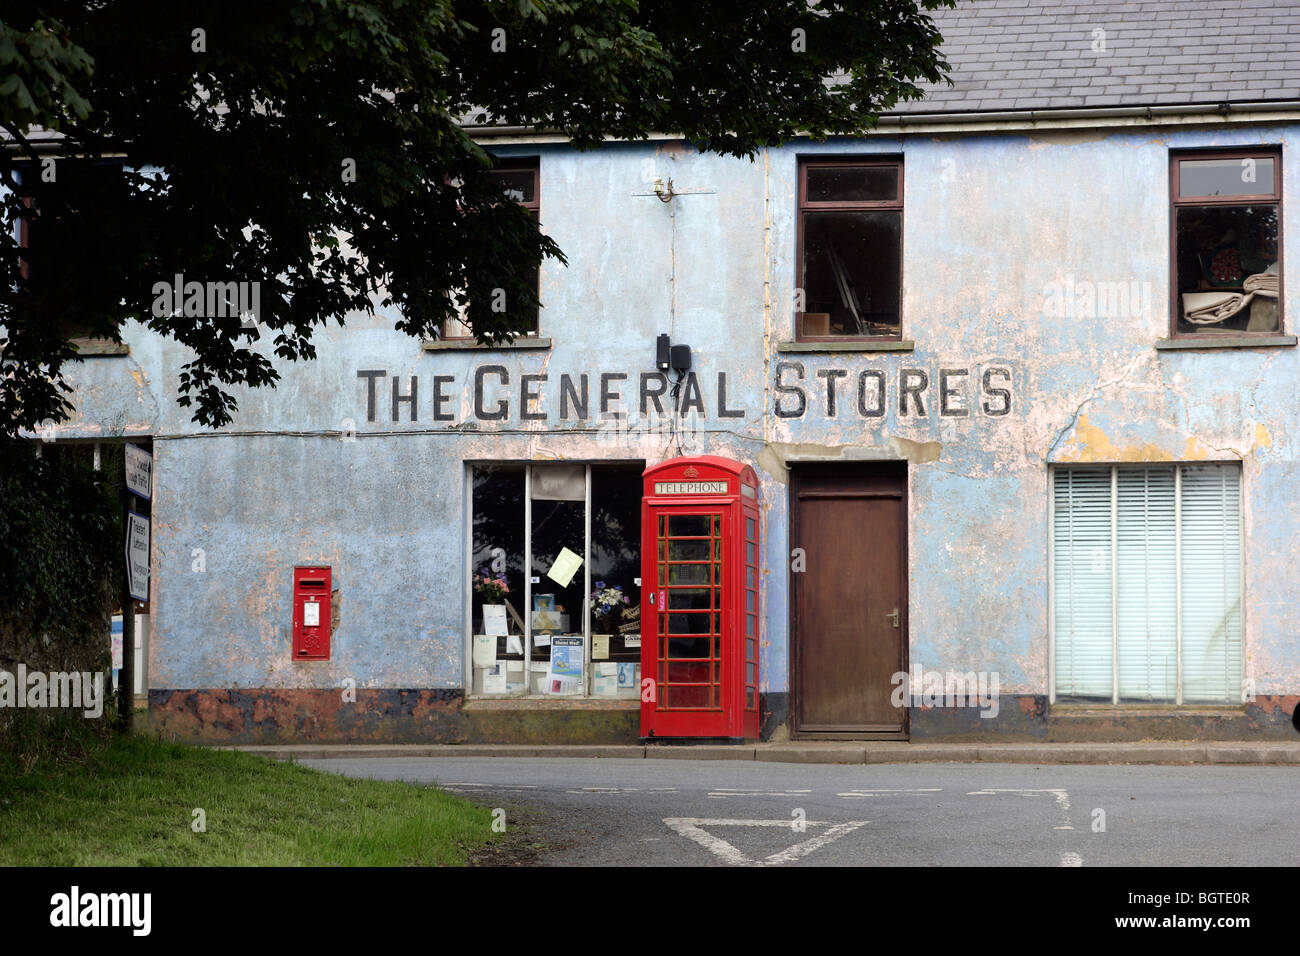 General Stores, Mathry, Pembrokeshire  Old fashioned Red